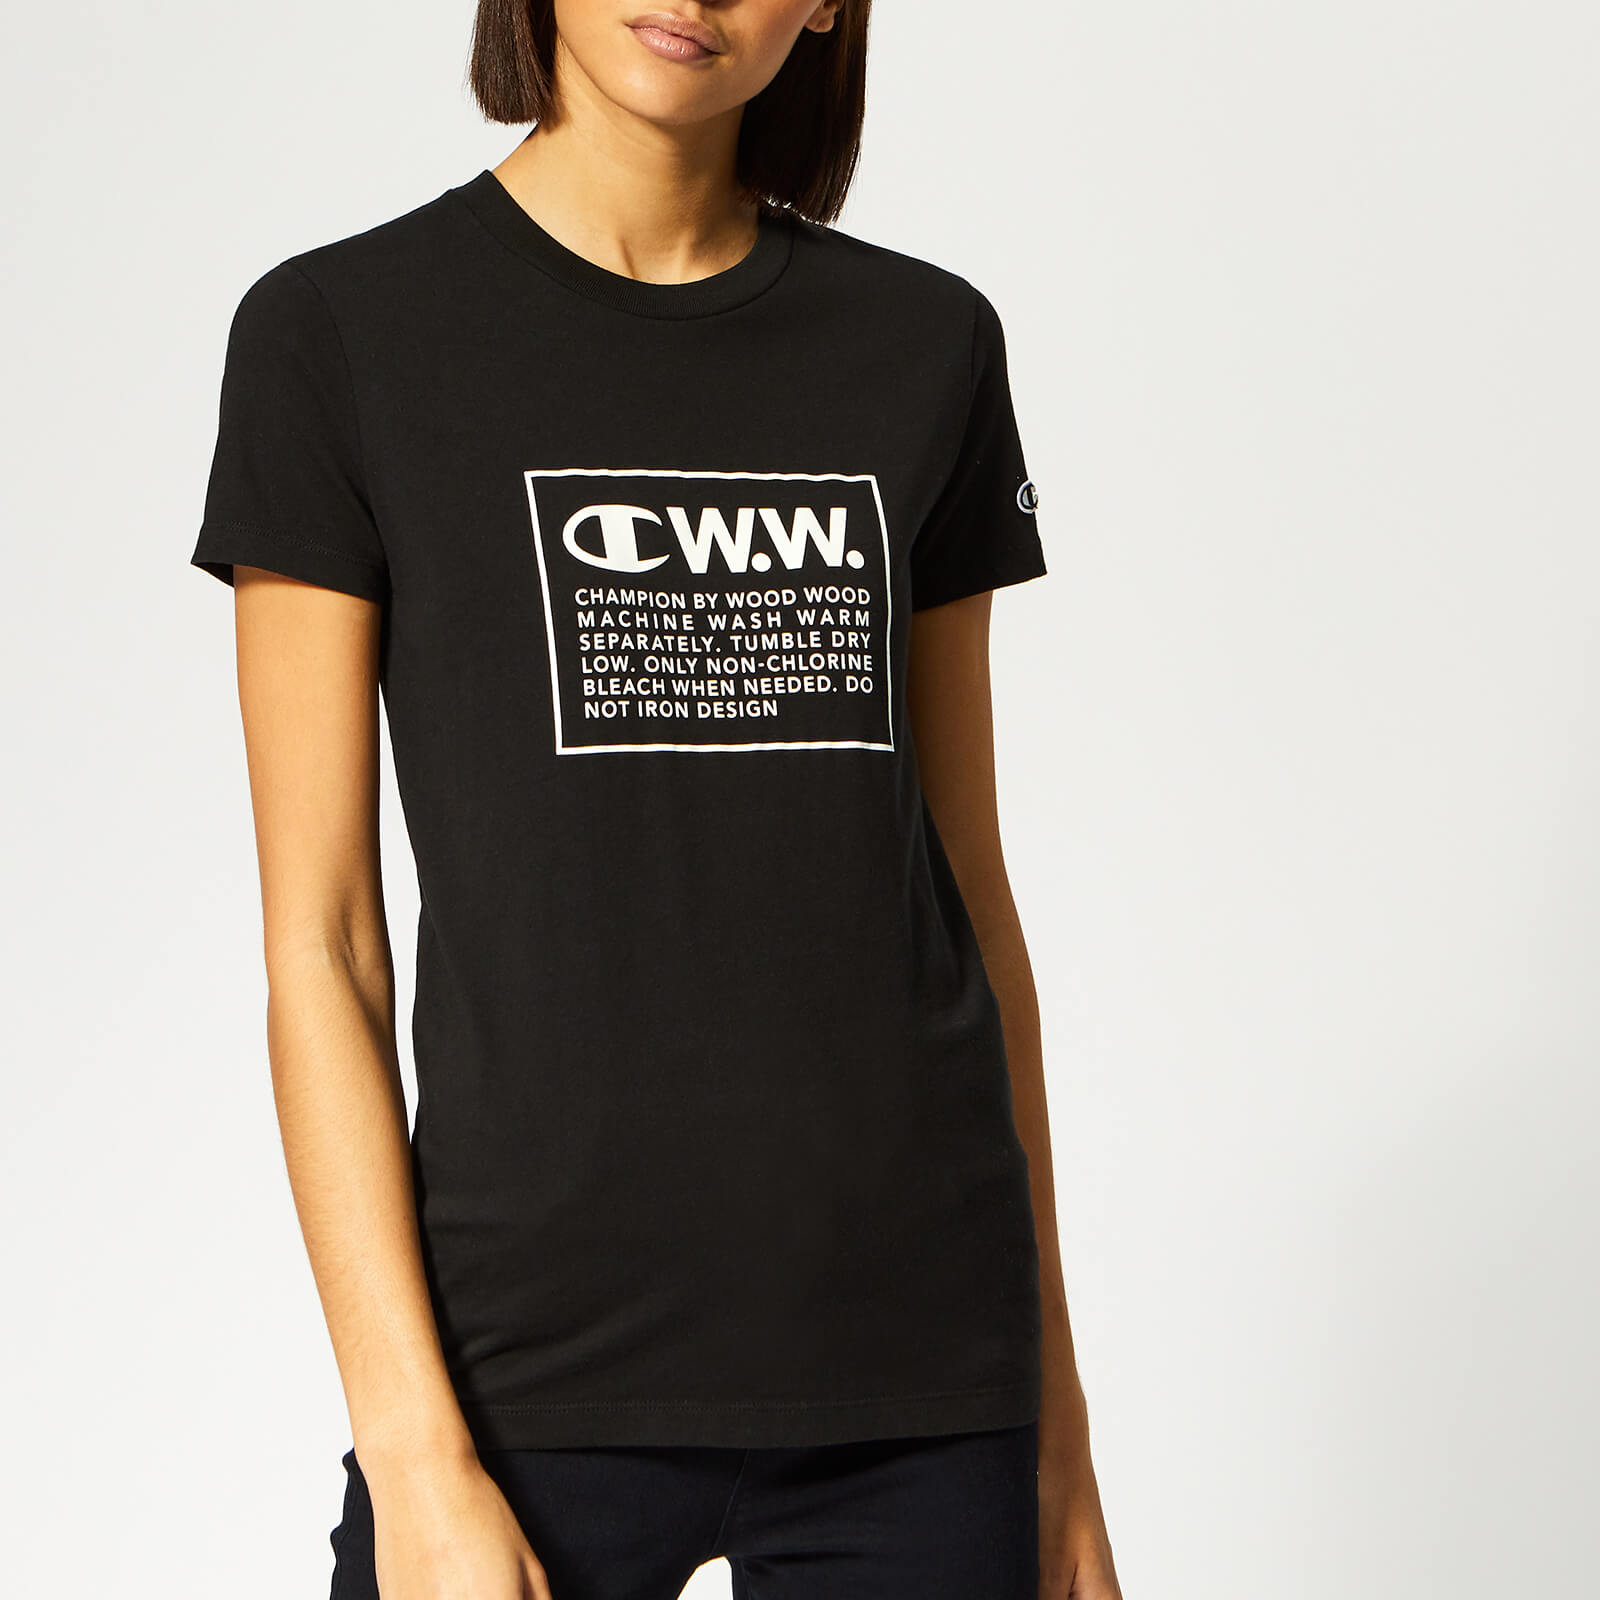 b3e158c0 Champion X WOOD WOOD Women's Lyn Crew Neck T-Shirt - Black - Free UK  Delivery over £50